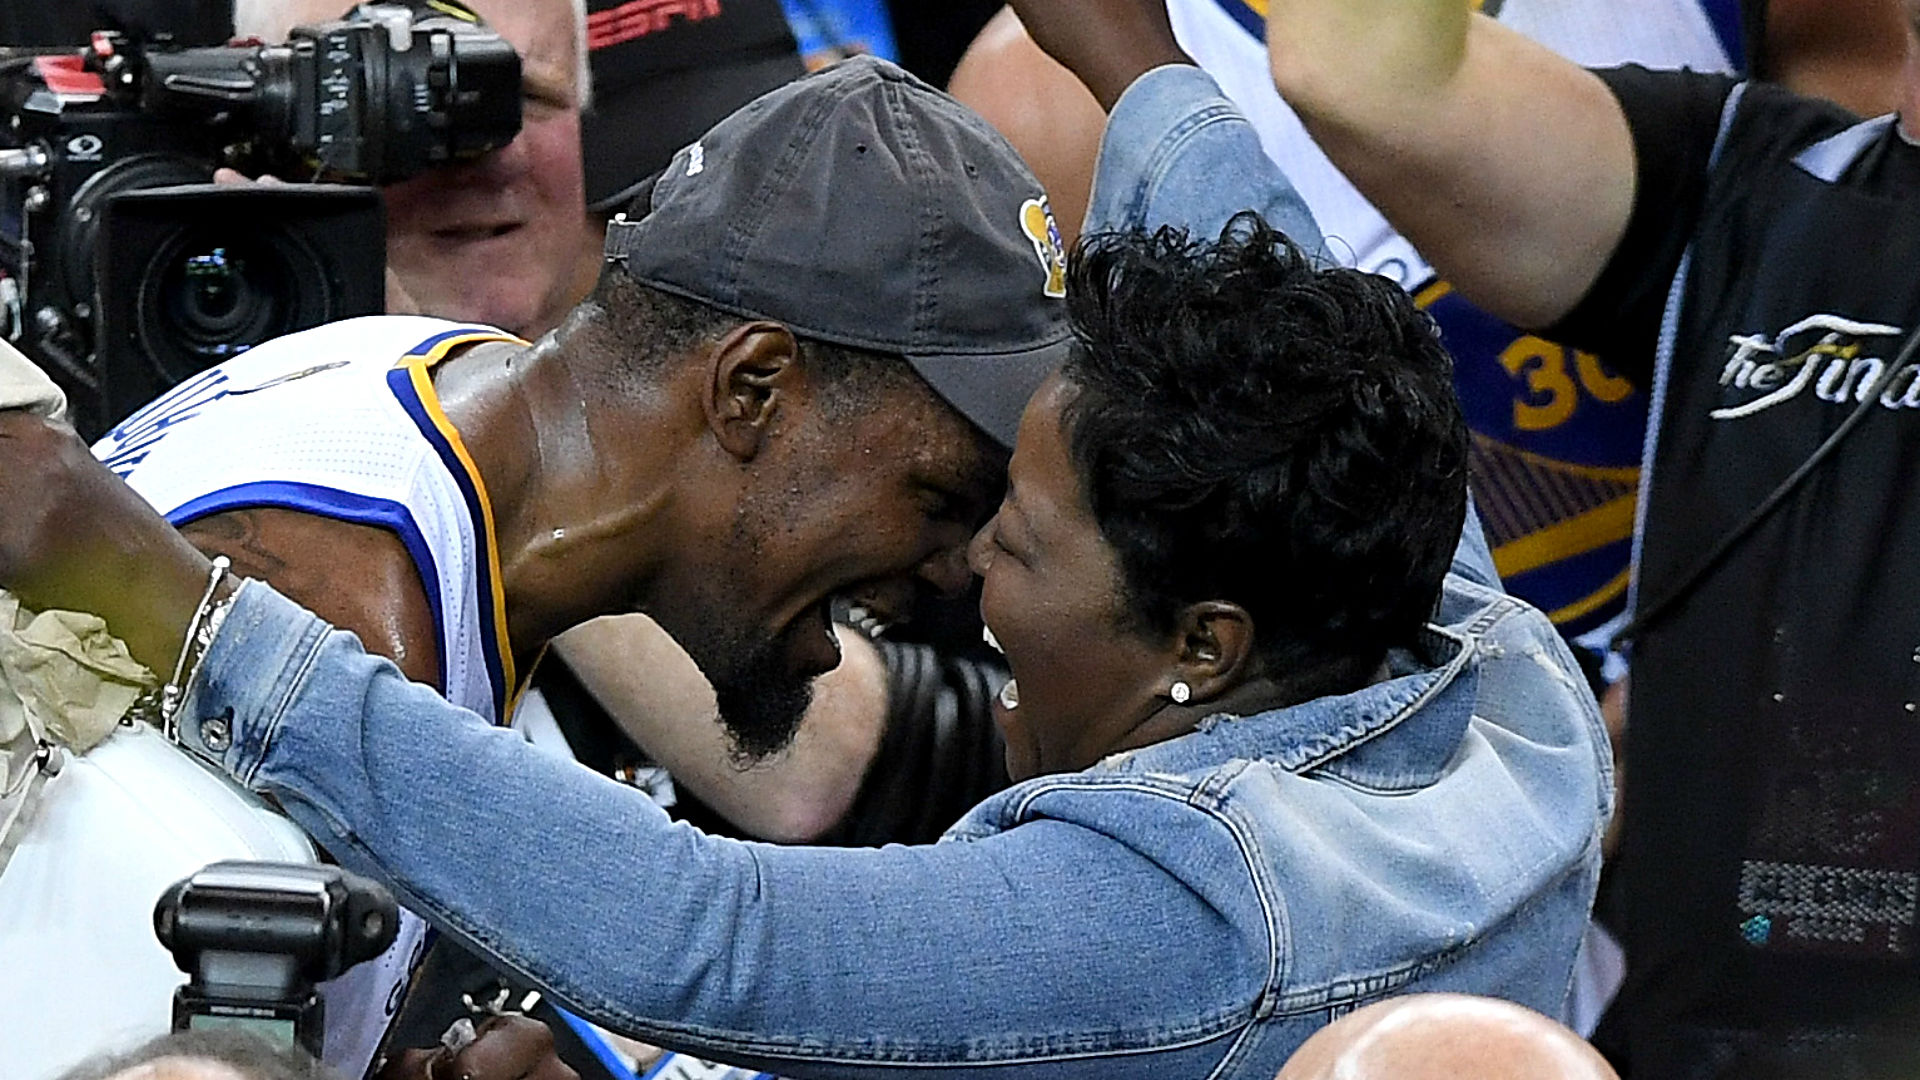 Wanda Durant said it was heartbreaking to watch son Kevin get hurt and that he told her not to cry when they talked a few minutes later.